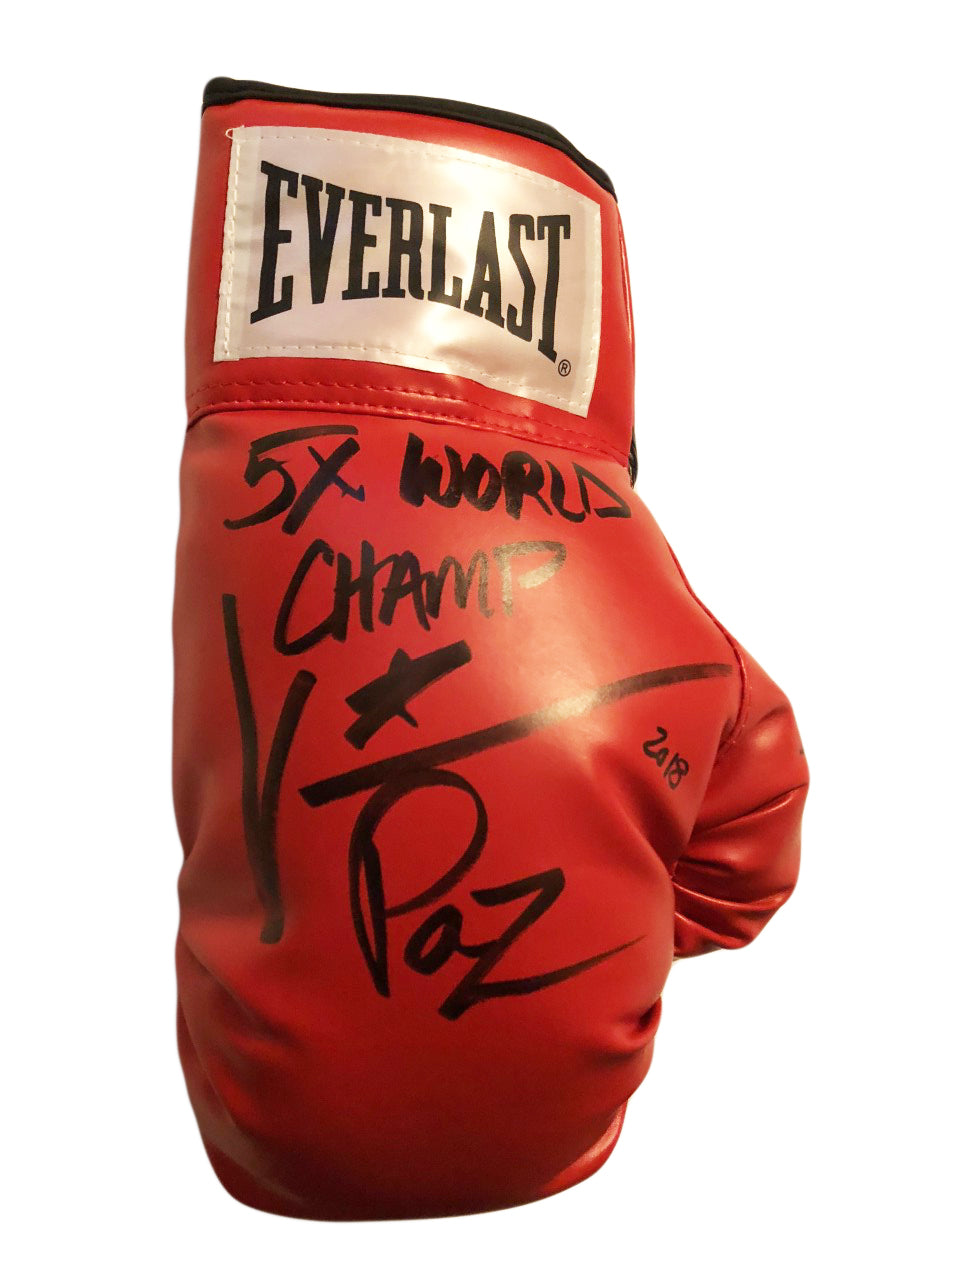 Vinny Paz Pazienza Signed Autographed Boxing Glove 5X World Champ 2018